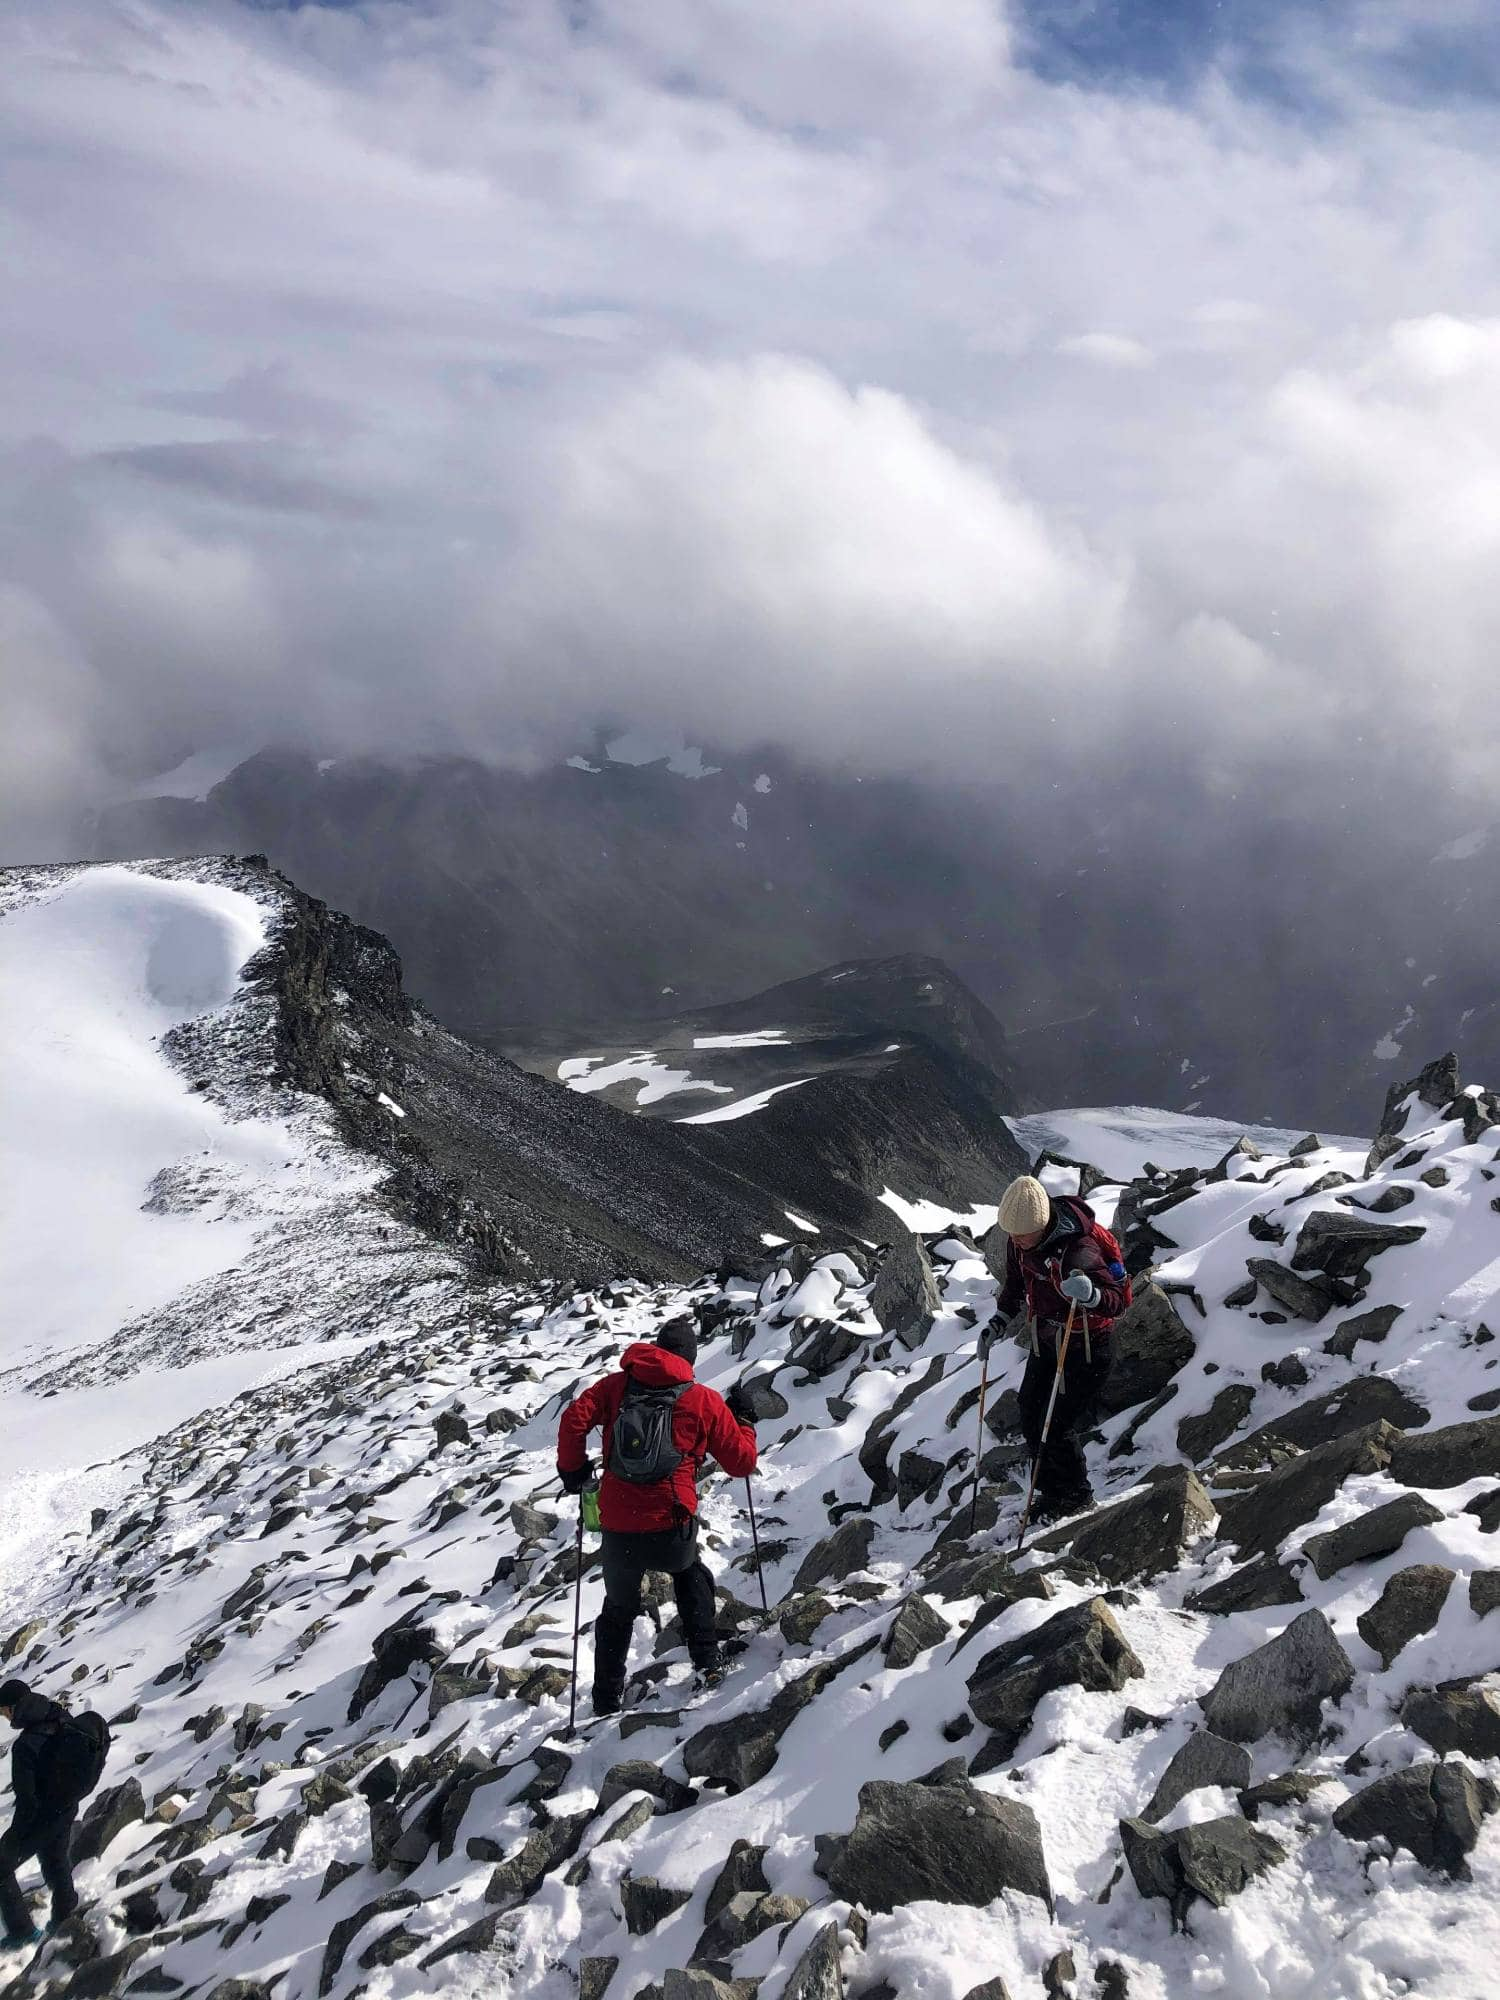 Hiking conditions at Galdhøpiggen in Jotunheimen in Norway